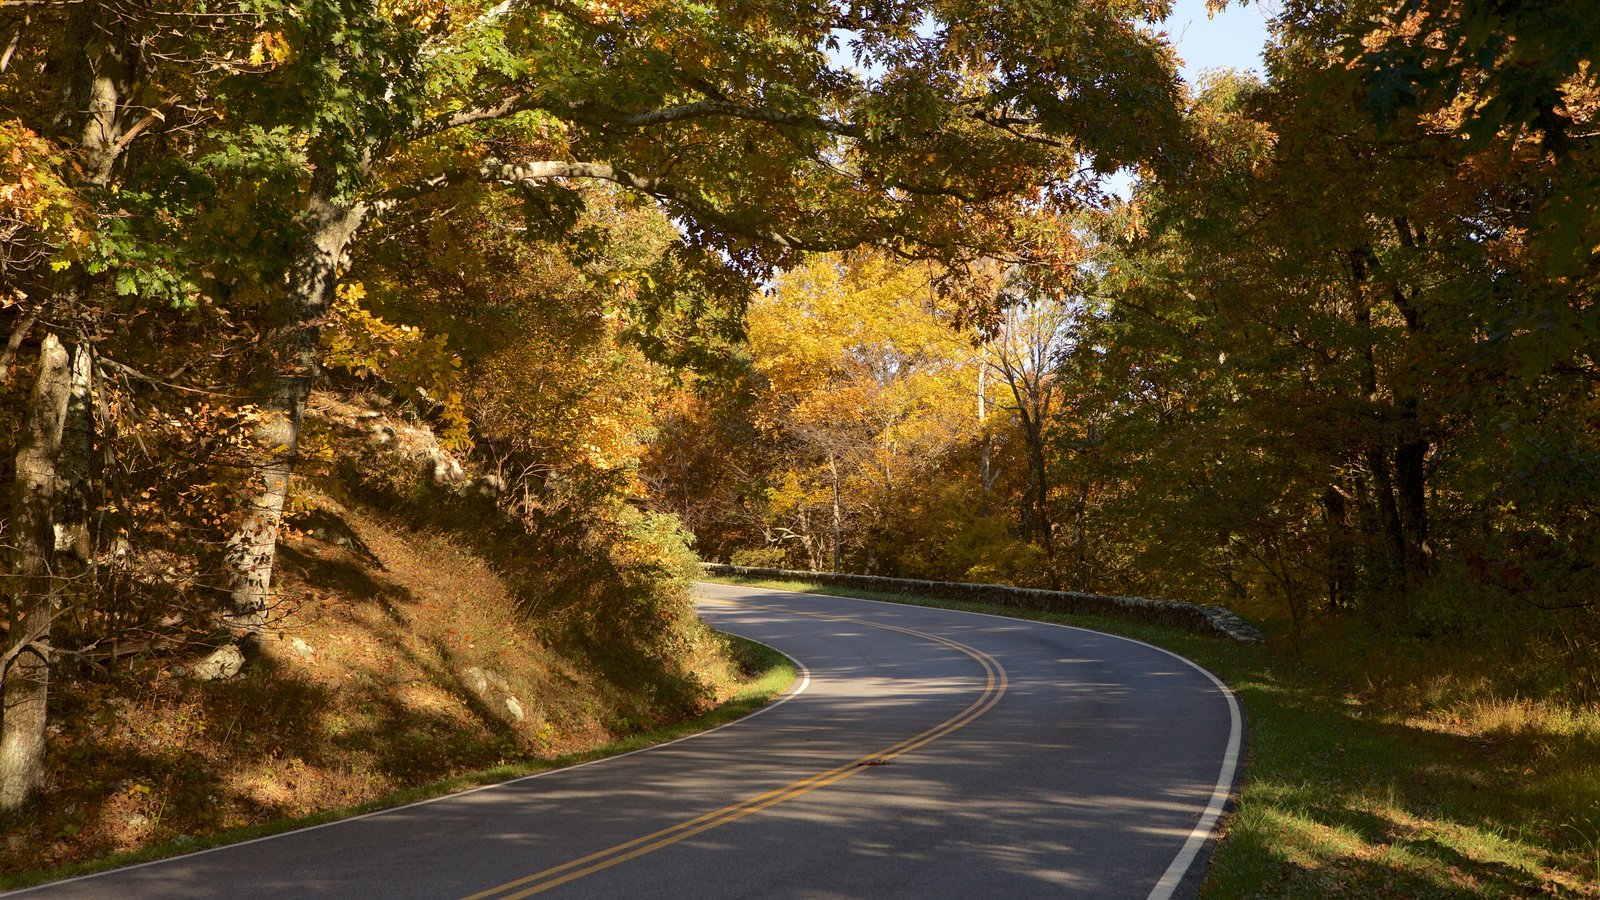 Shenandoah National Park featuring autumn leaves and forests